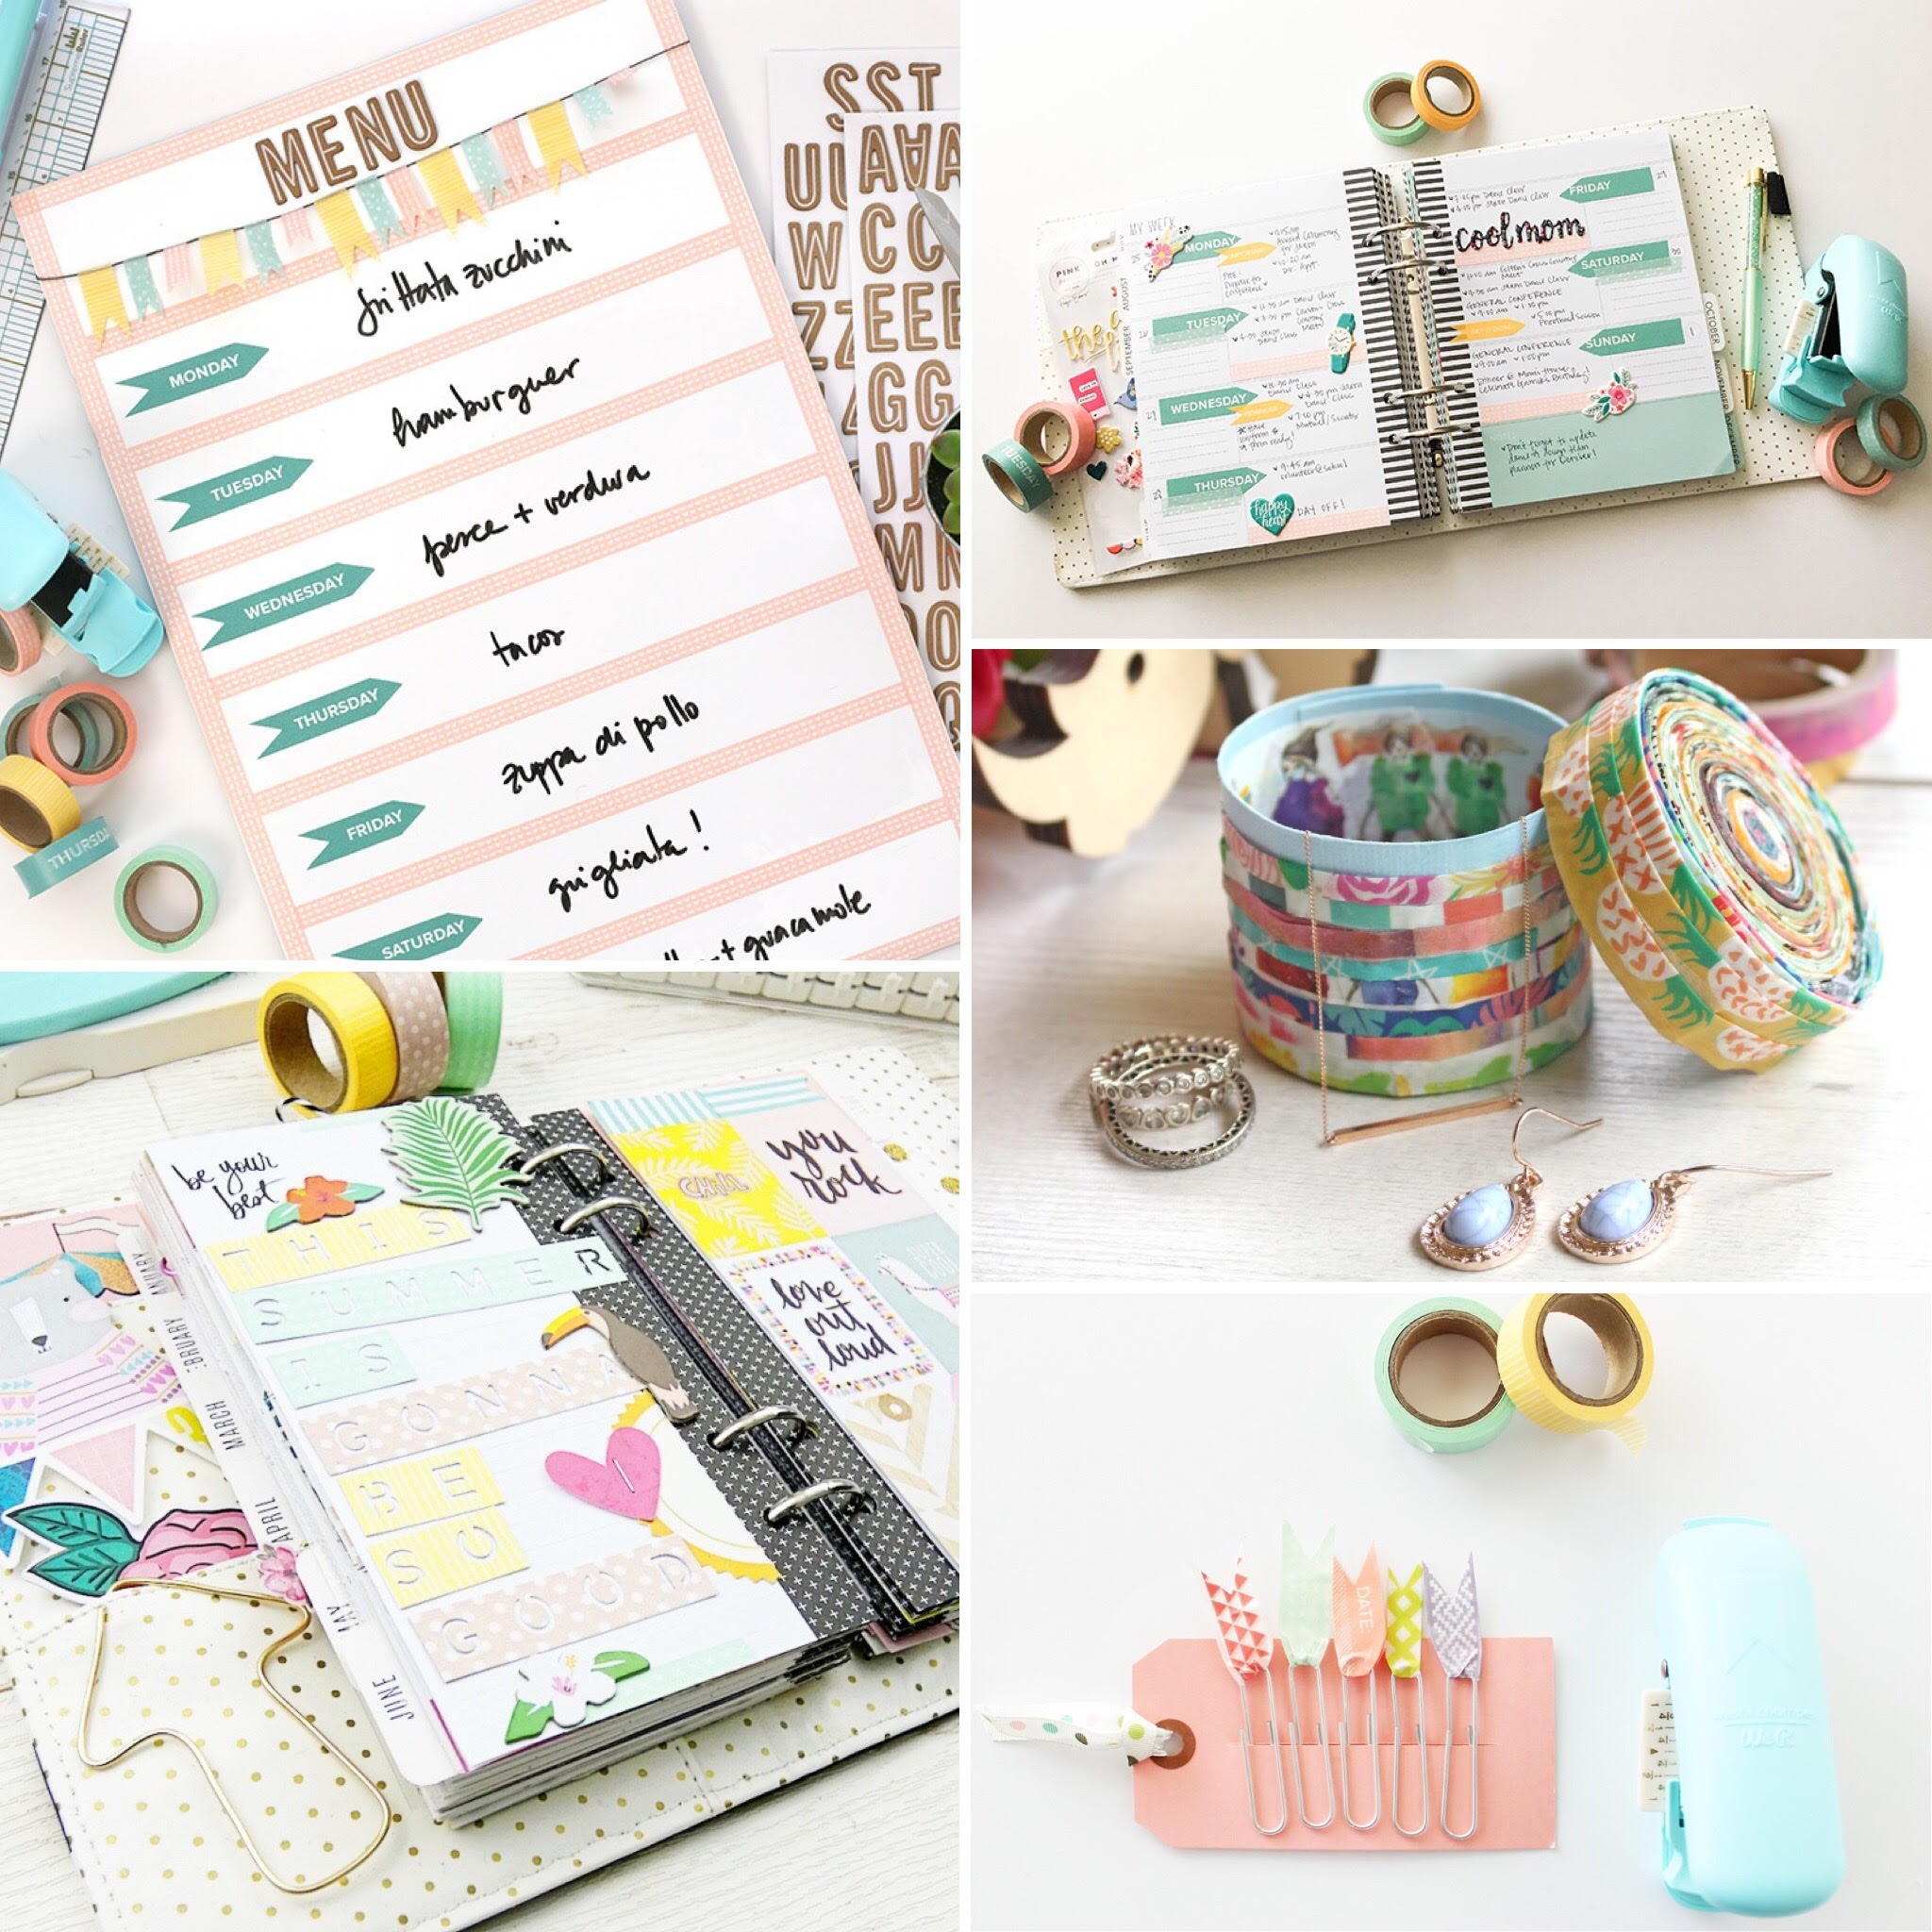 We R Memory Keepers washi tape projects ideas